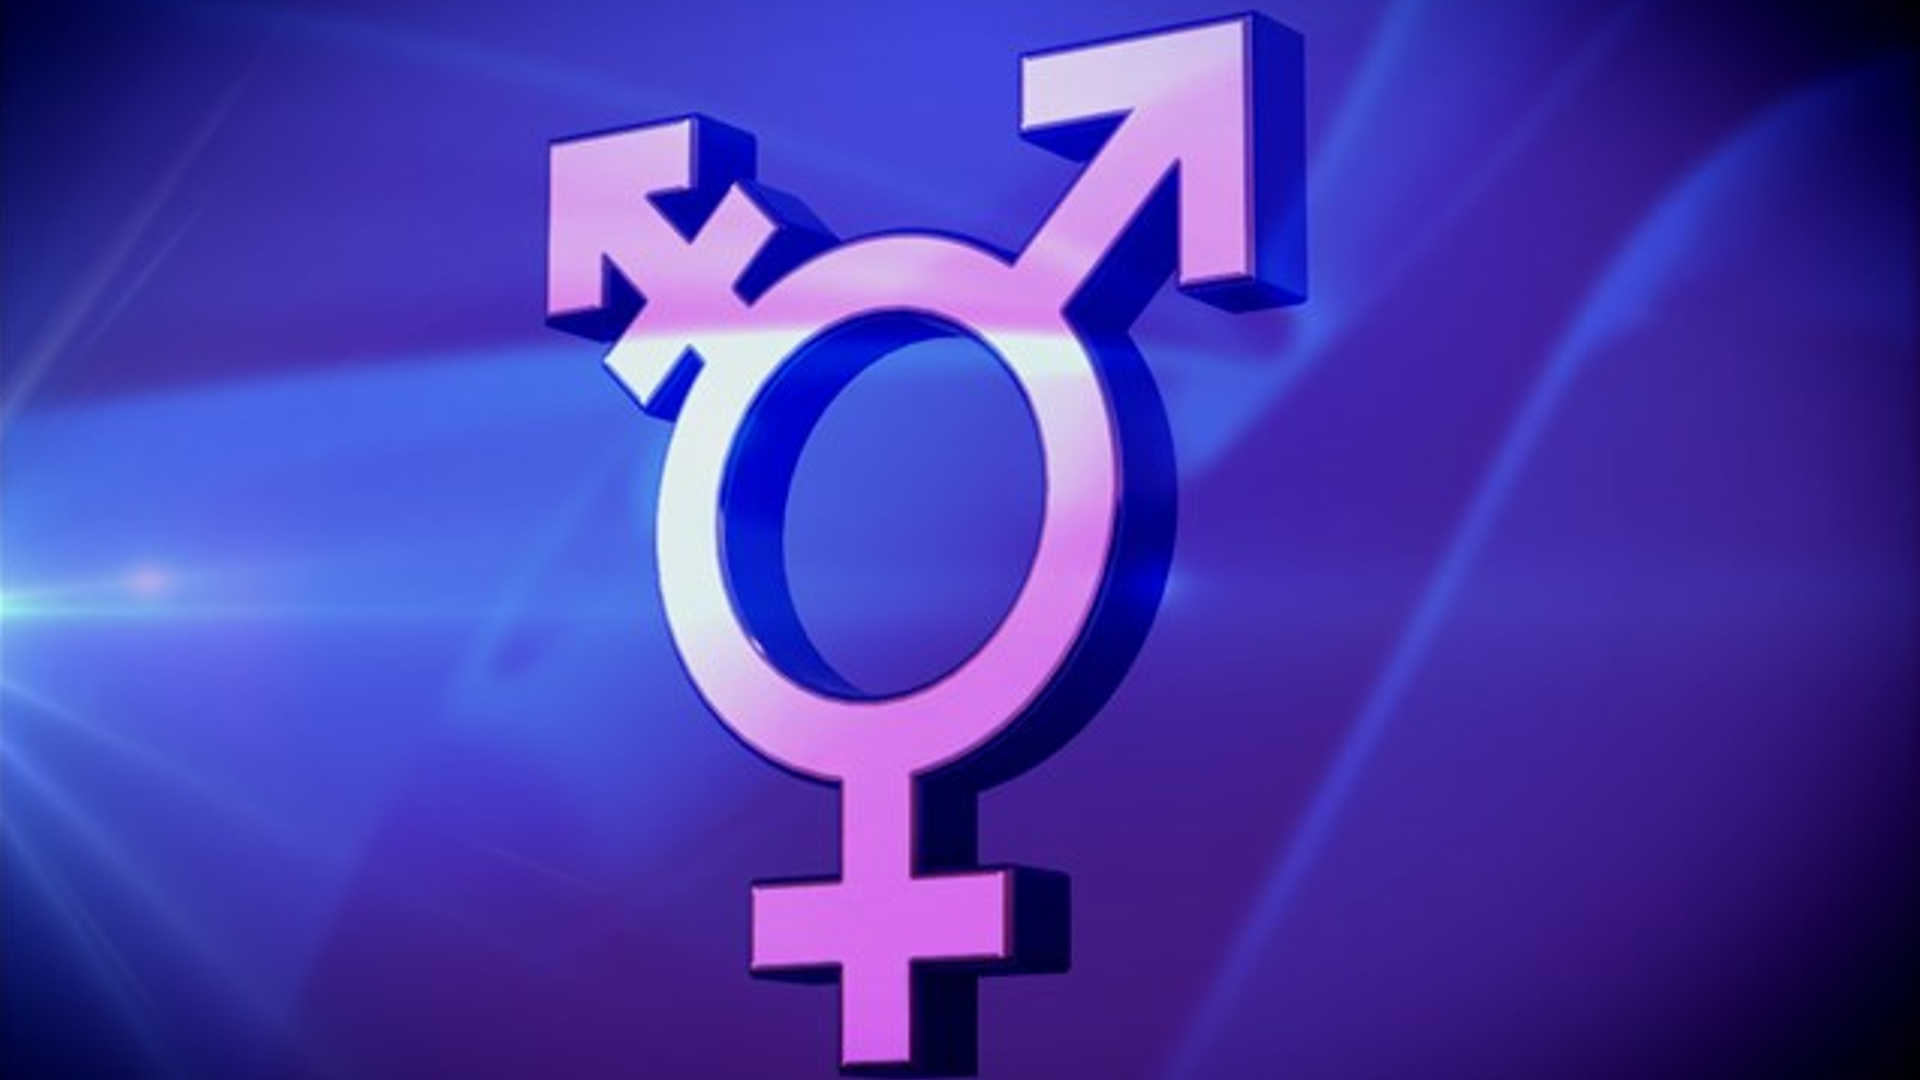 Governor signs bill to streamline gender identity change kobi tv legislation that makes it easier and more discreet for oregonians to change their name andor gender on state documents including birth certificates xflitez Choice Image